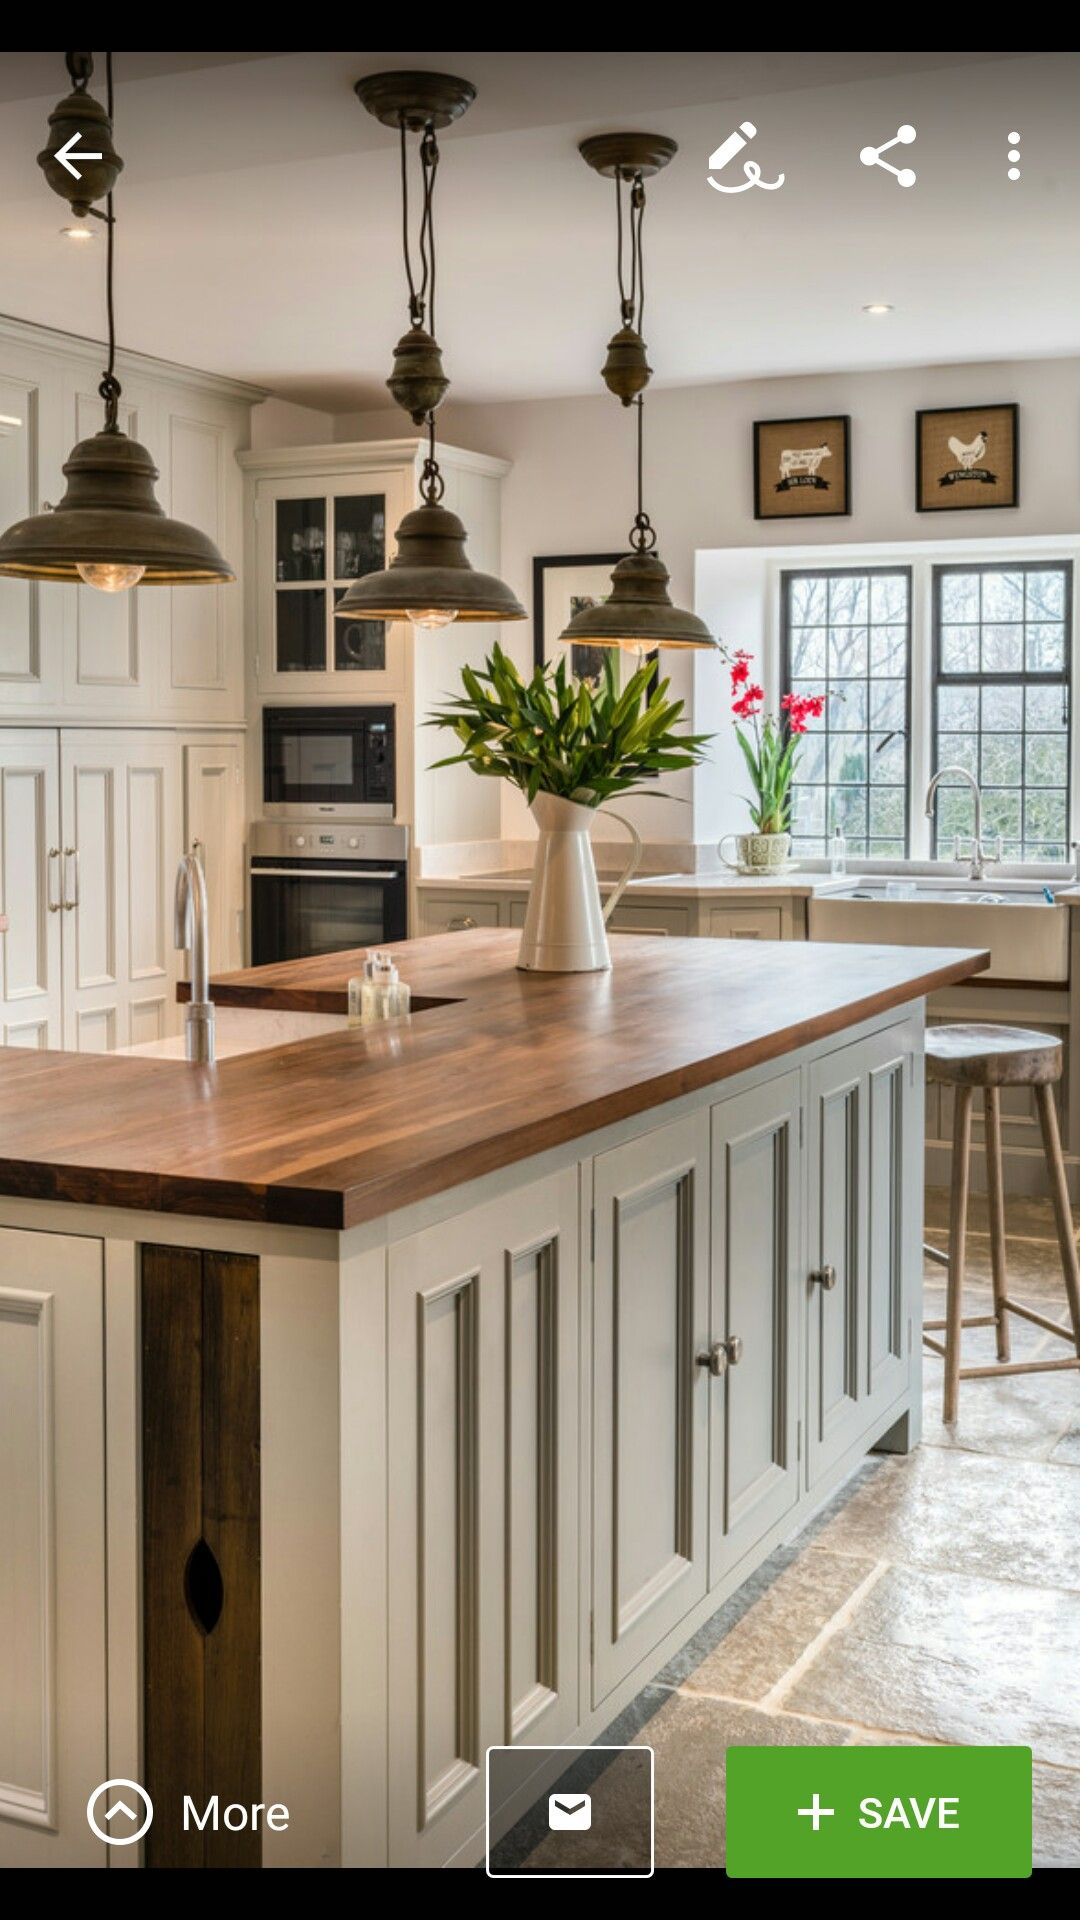 Farmhouse Kitchen Farmhouse Touches Country Rustic Distressed Look Rustic Kitchen Cabinets Rustic Farmhouse Kitchen Home Decor Kitchen